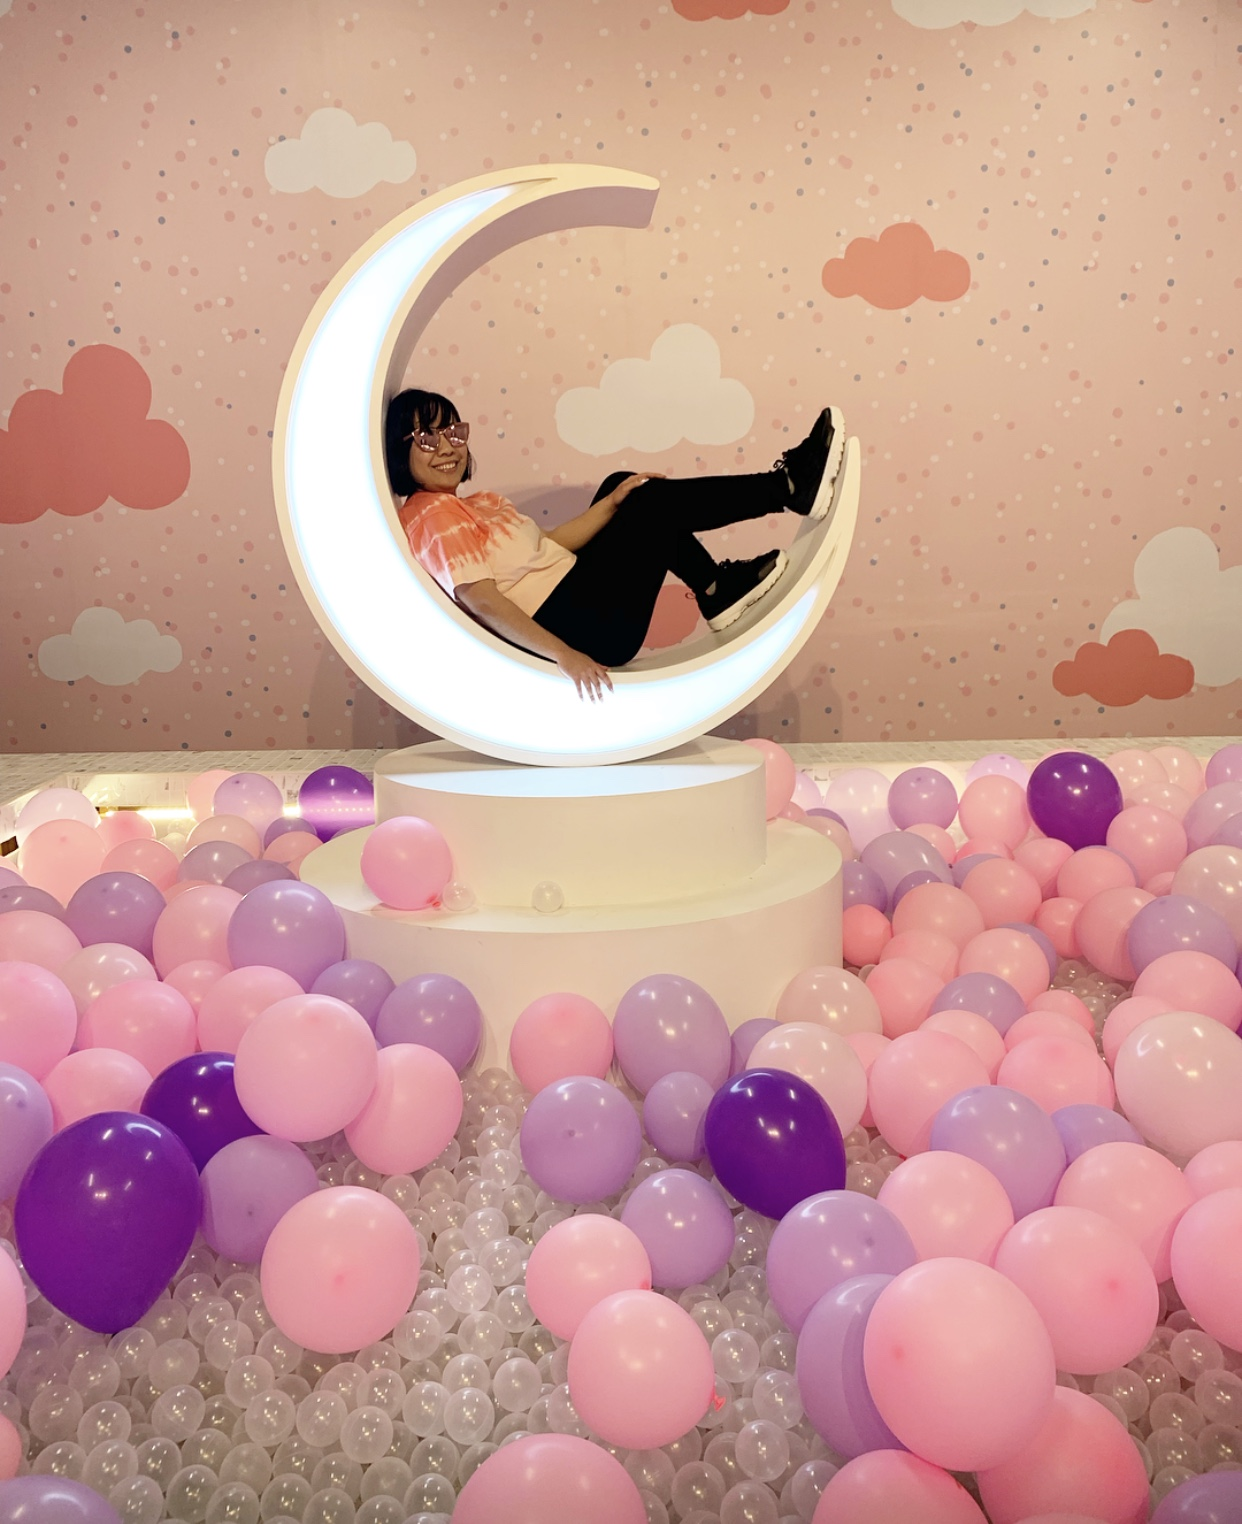 Definitely one of my favorite experiences was the balloon pool with the moon! Photo:  Kelli Wheeler